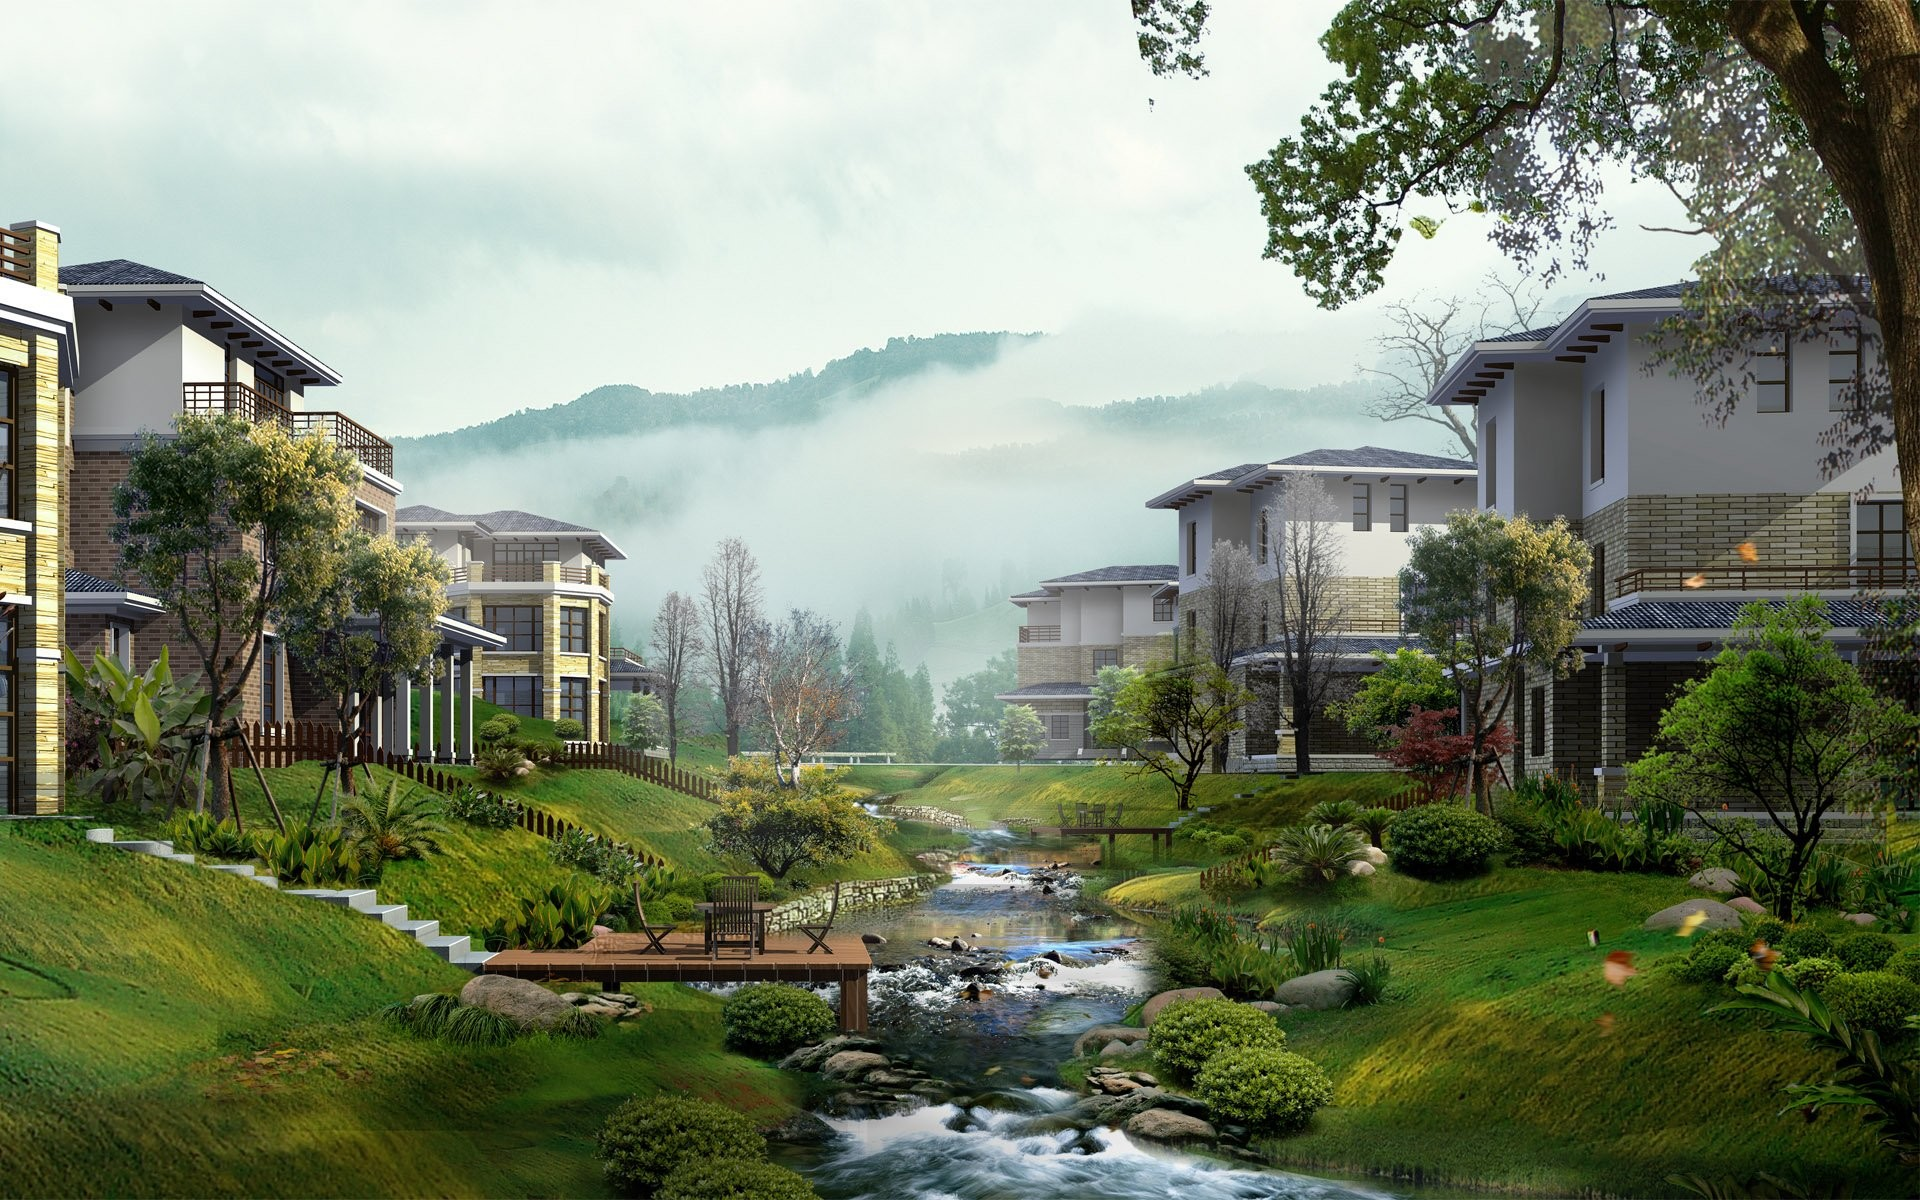 Village HD 359981. SHARE. TAGS: Images Photoshop China Landscape